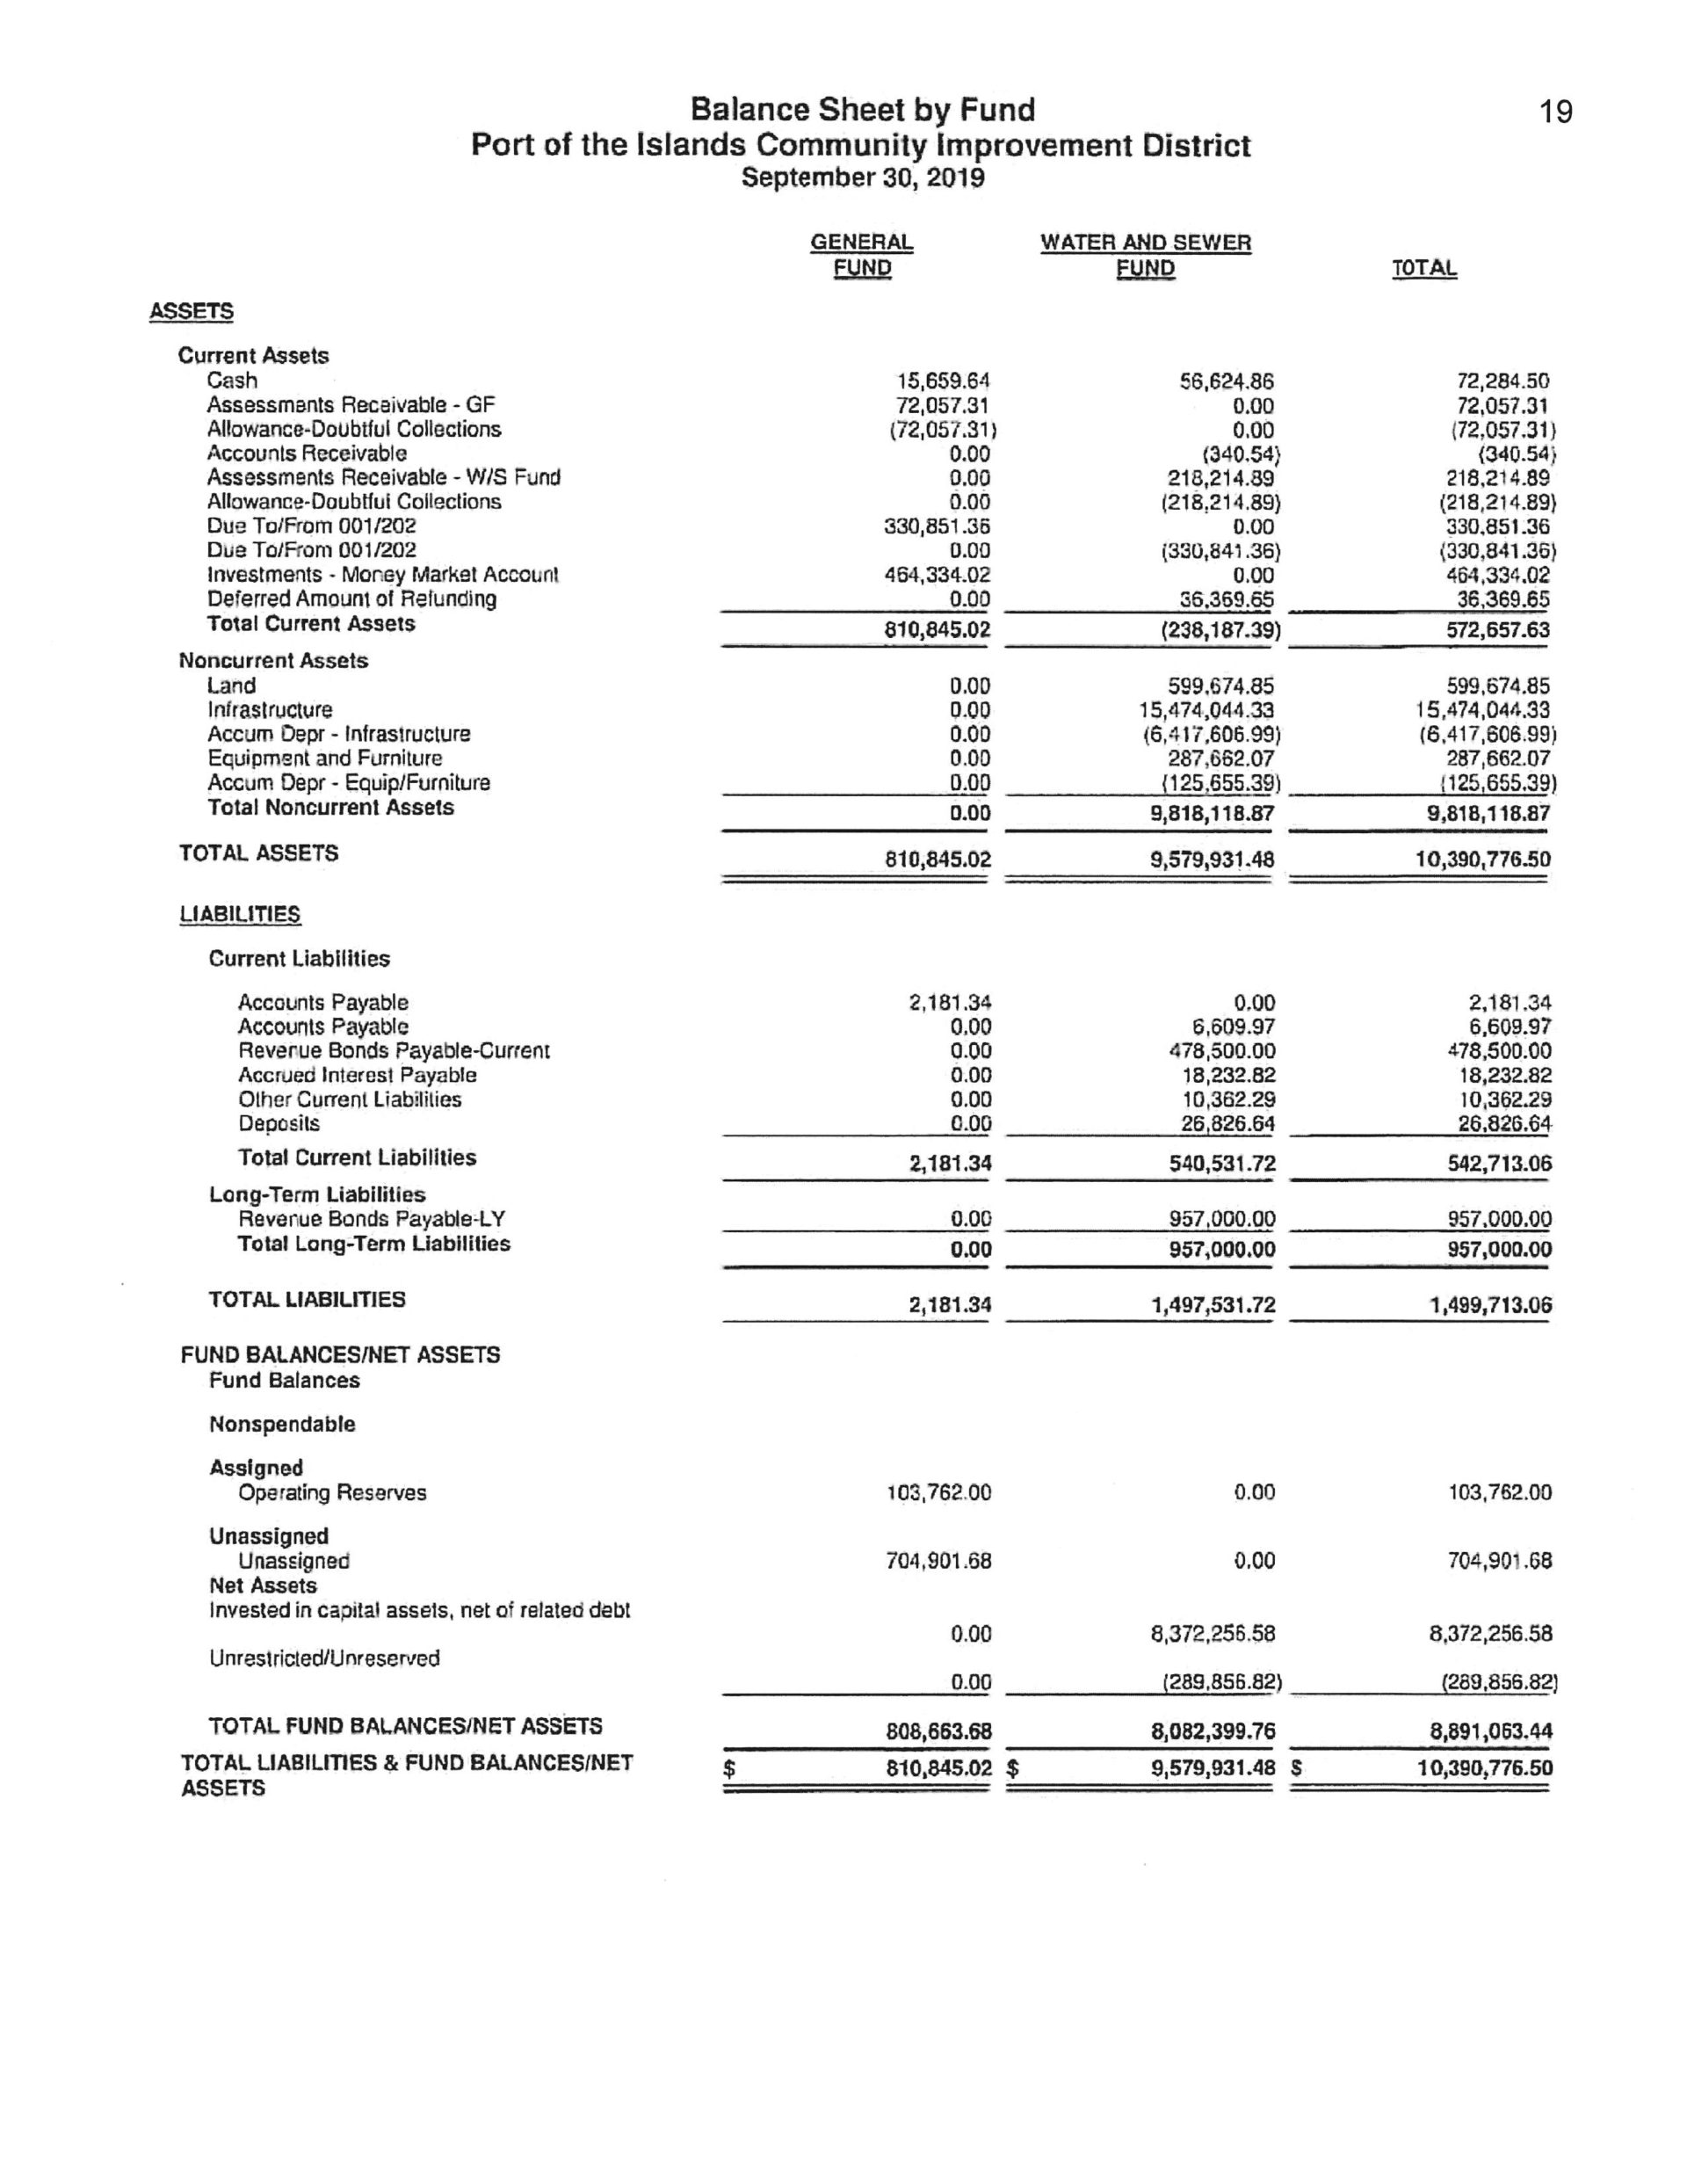 Balance Sheet by Fund Financial Report 9-2019 page 2